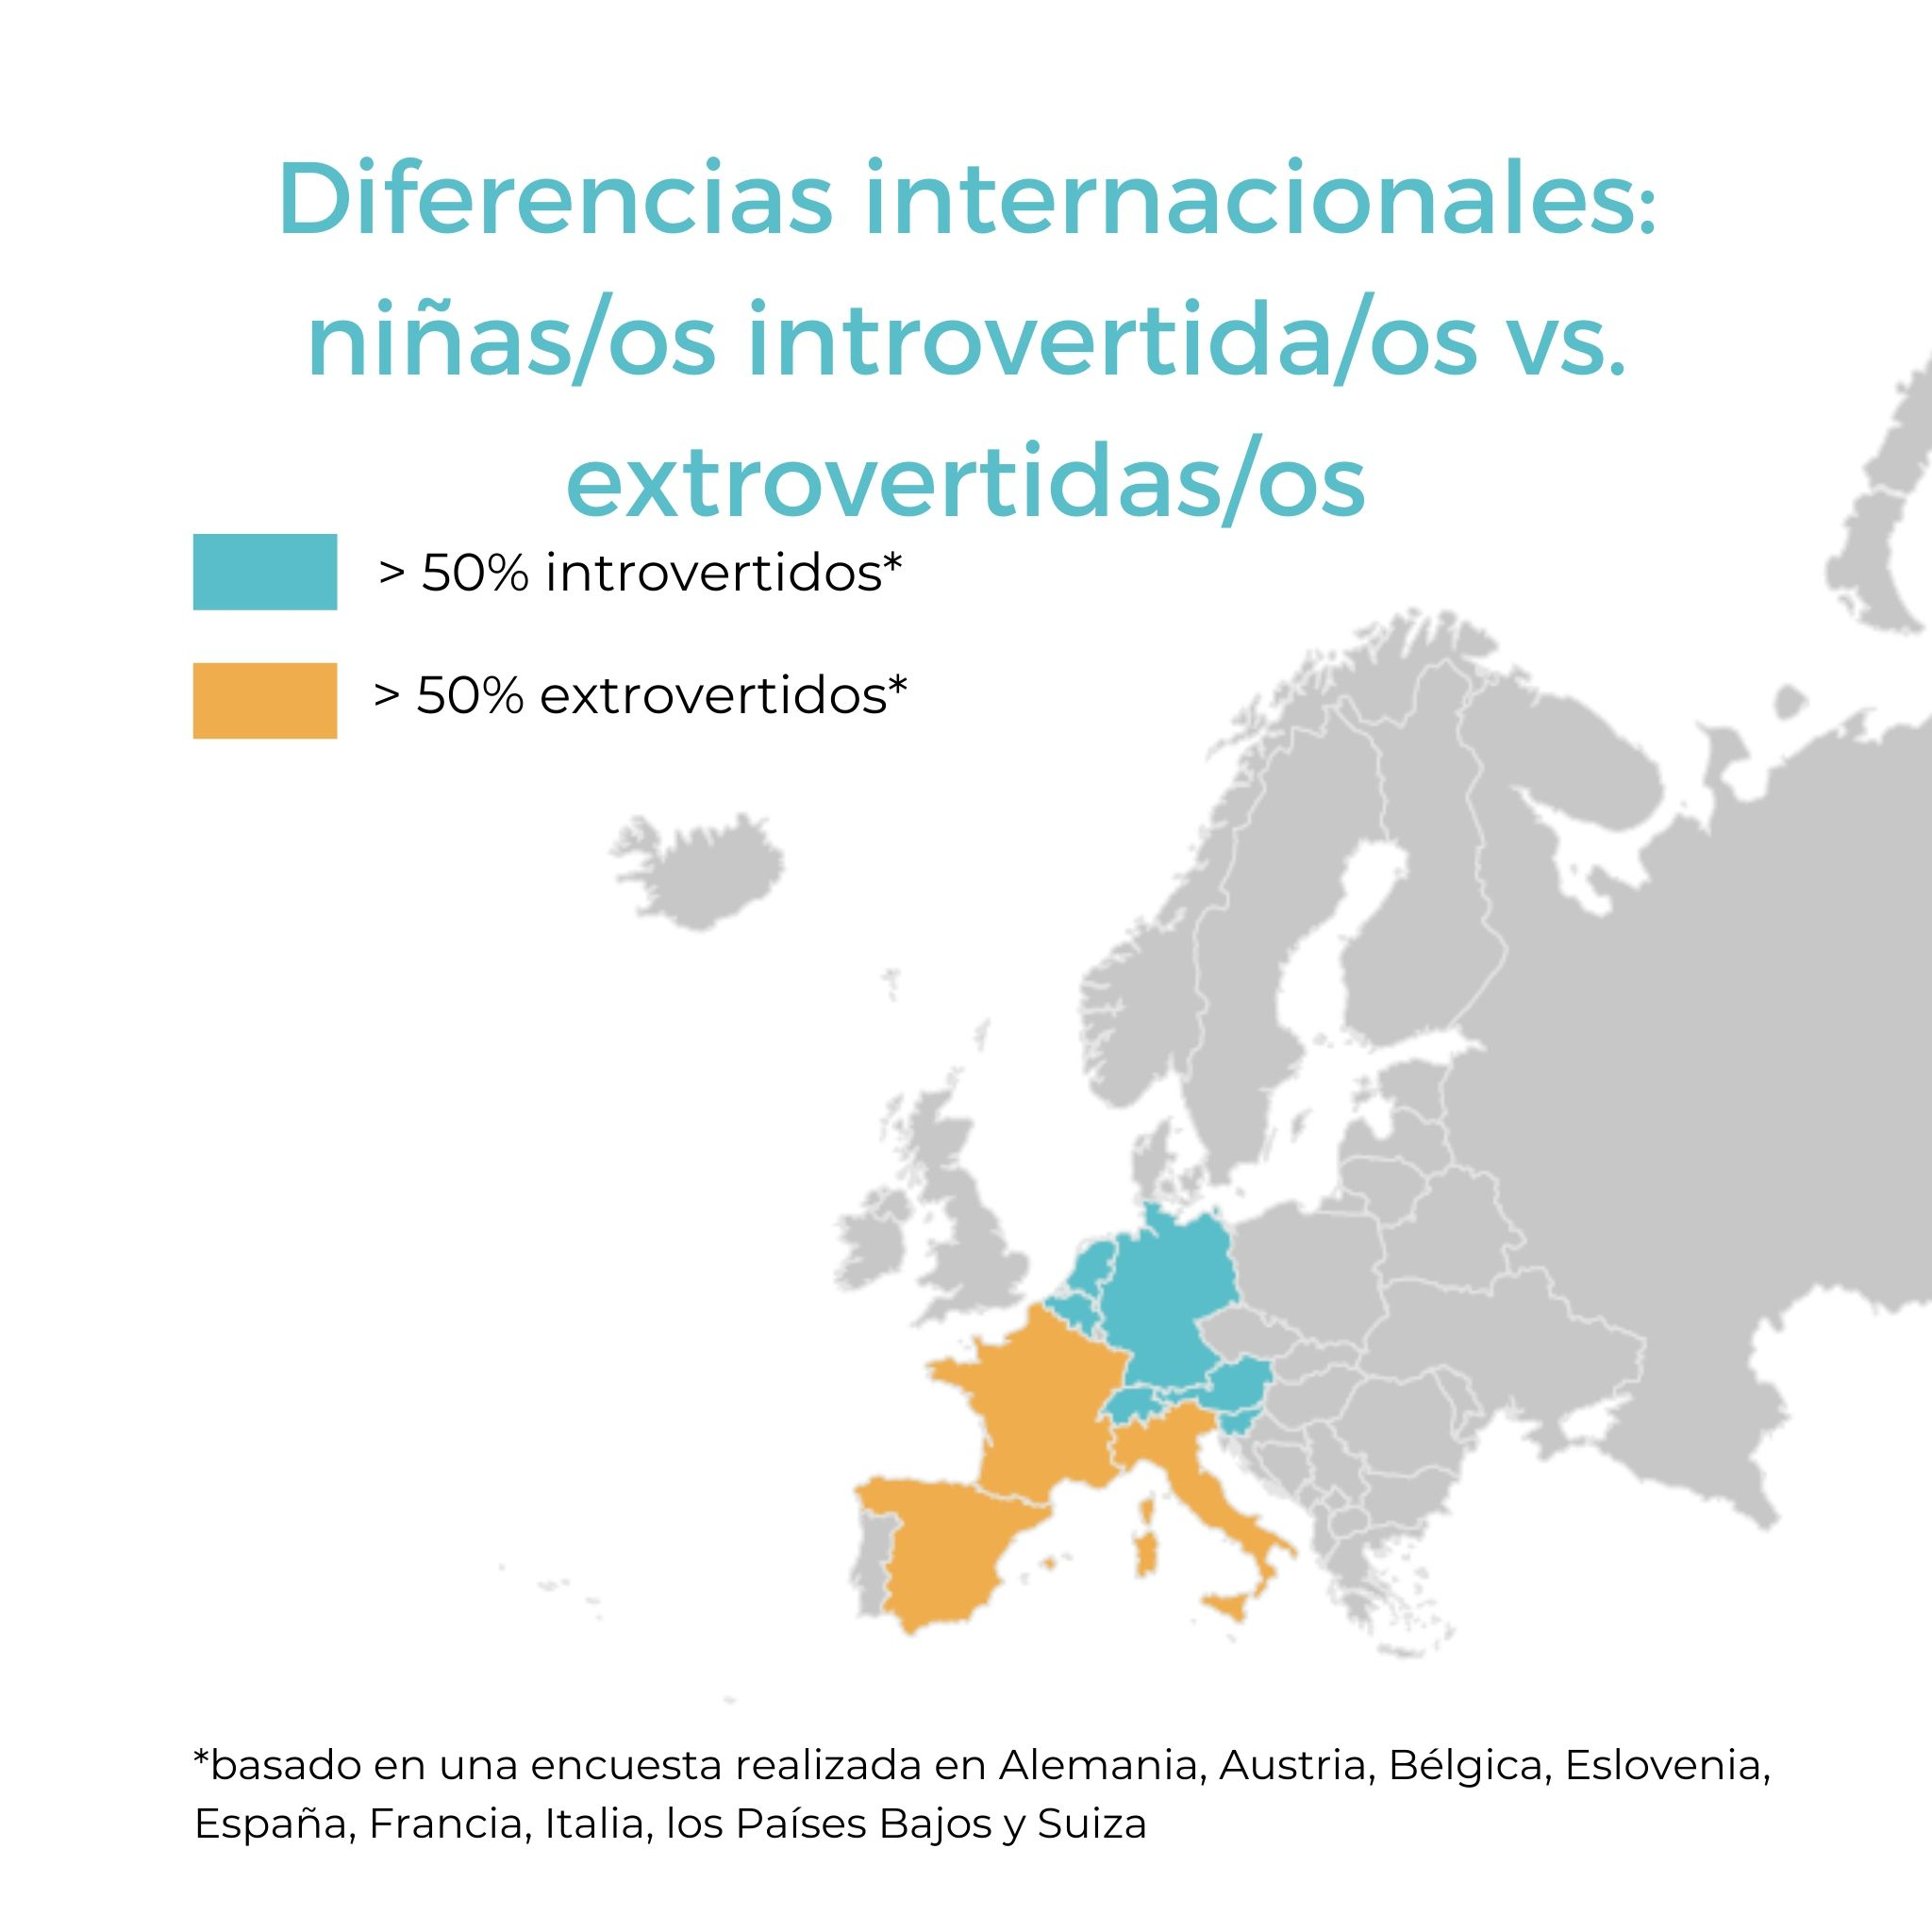 Niños Introvertidos vs Extroveritods en Europa